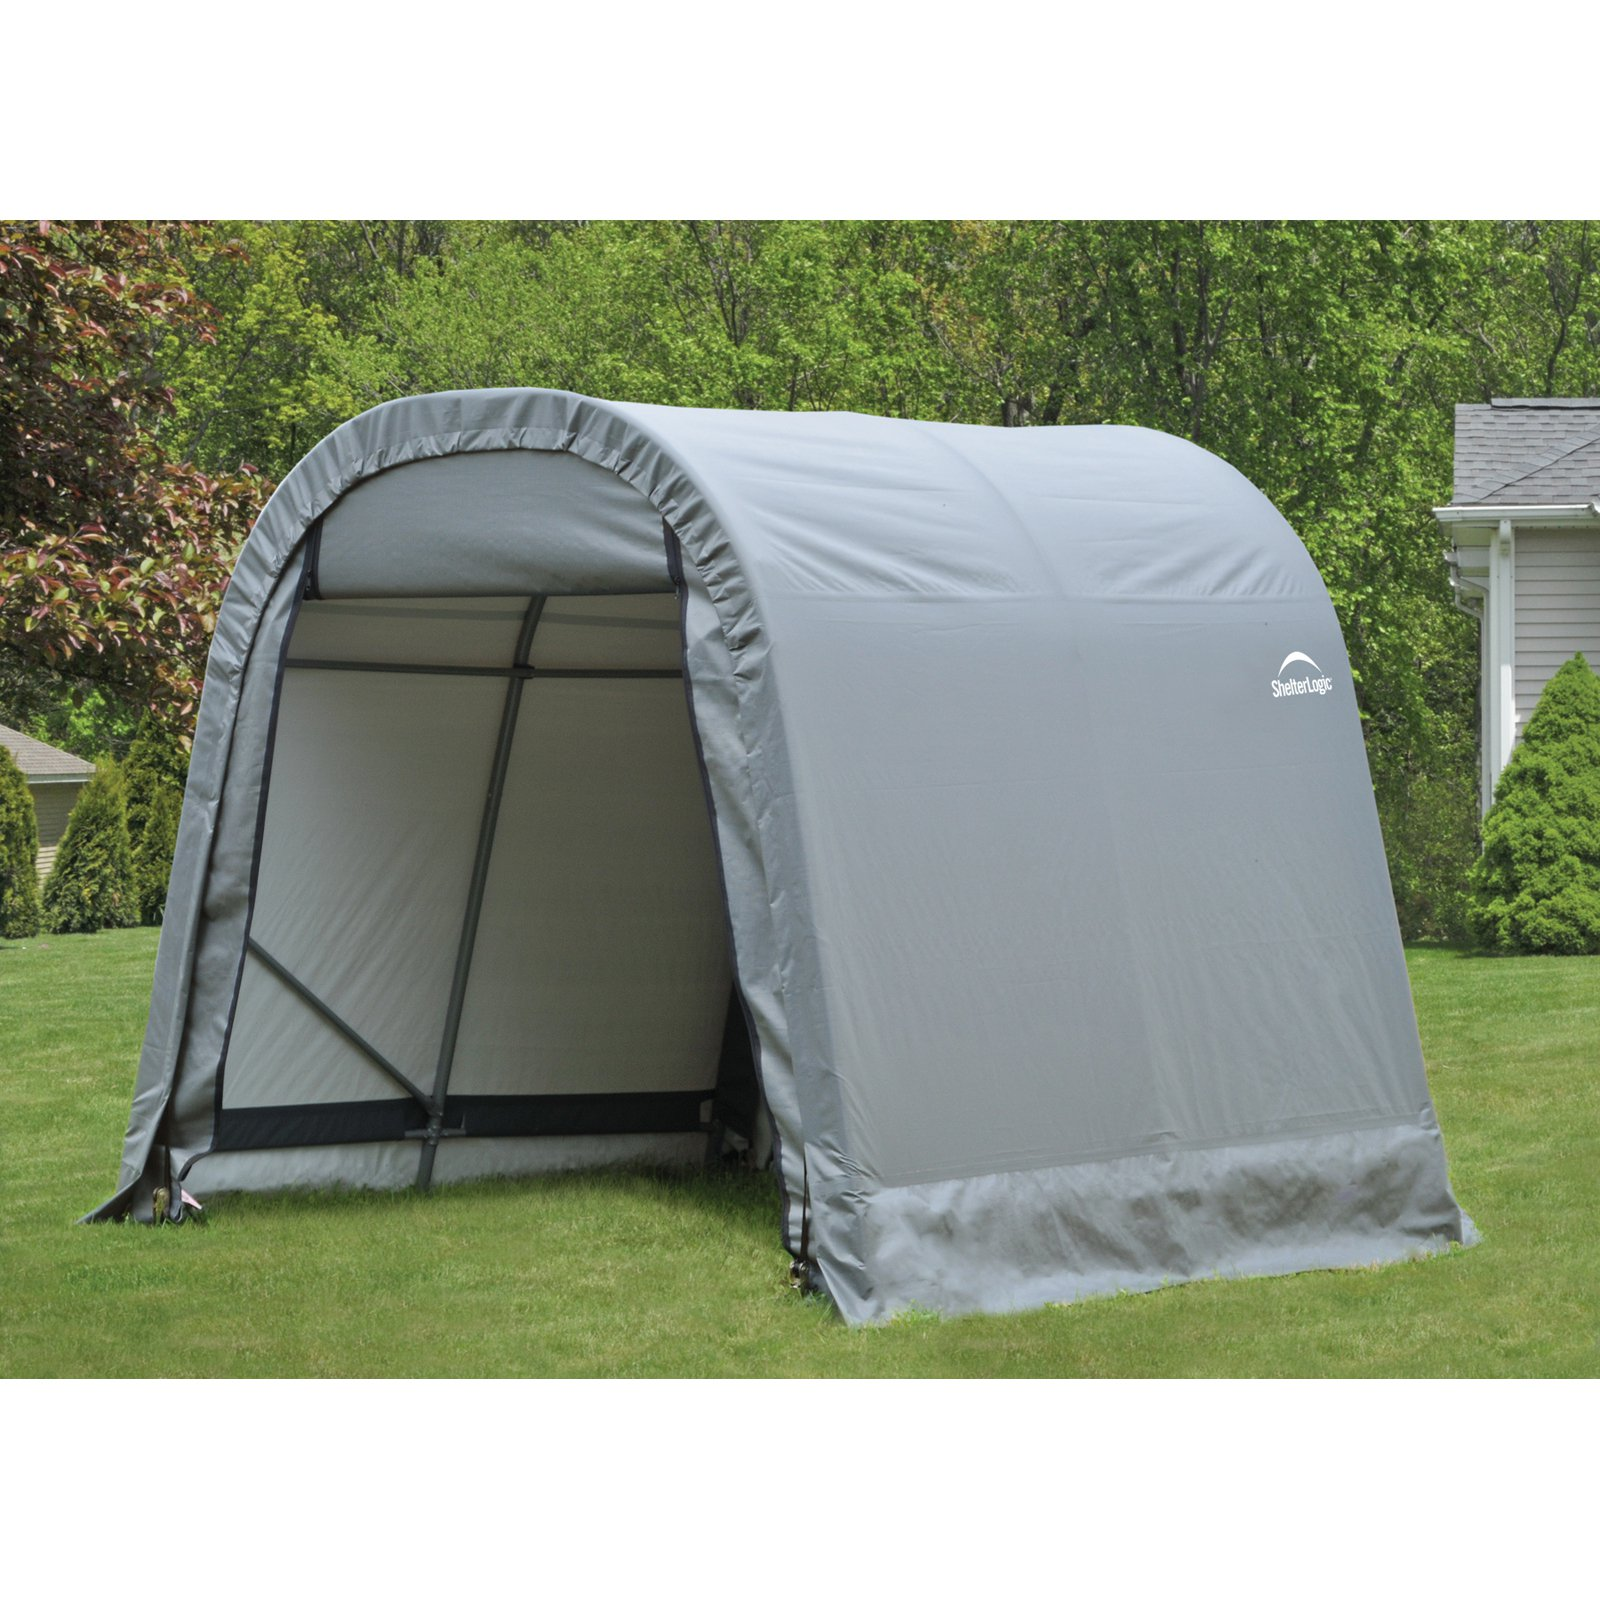 Shelterlogic 8' x 12' x 8' Round Style Shelter, Gray